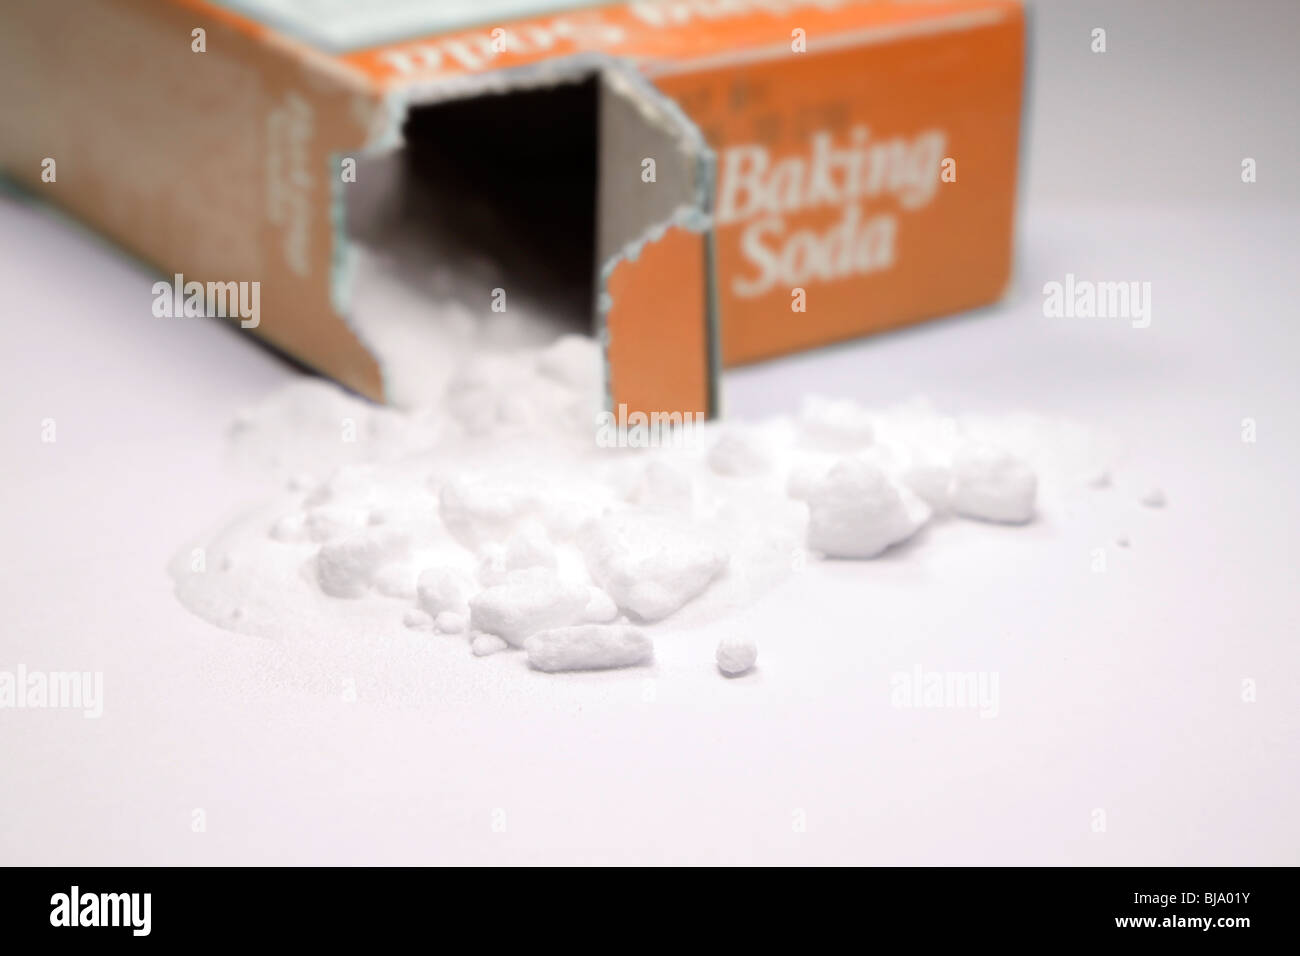 sodium bicarbonate or baking soda a common leavening agent used by bakers and housewives. - Stock Image